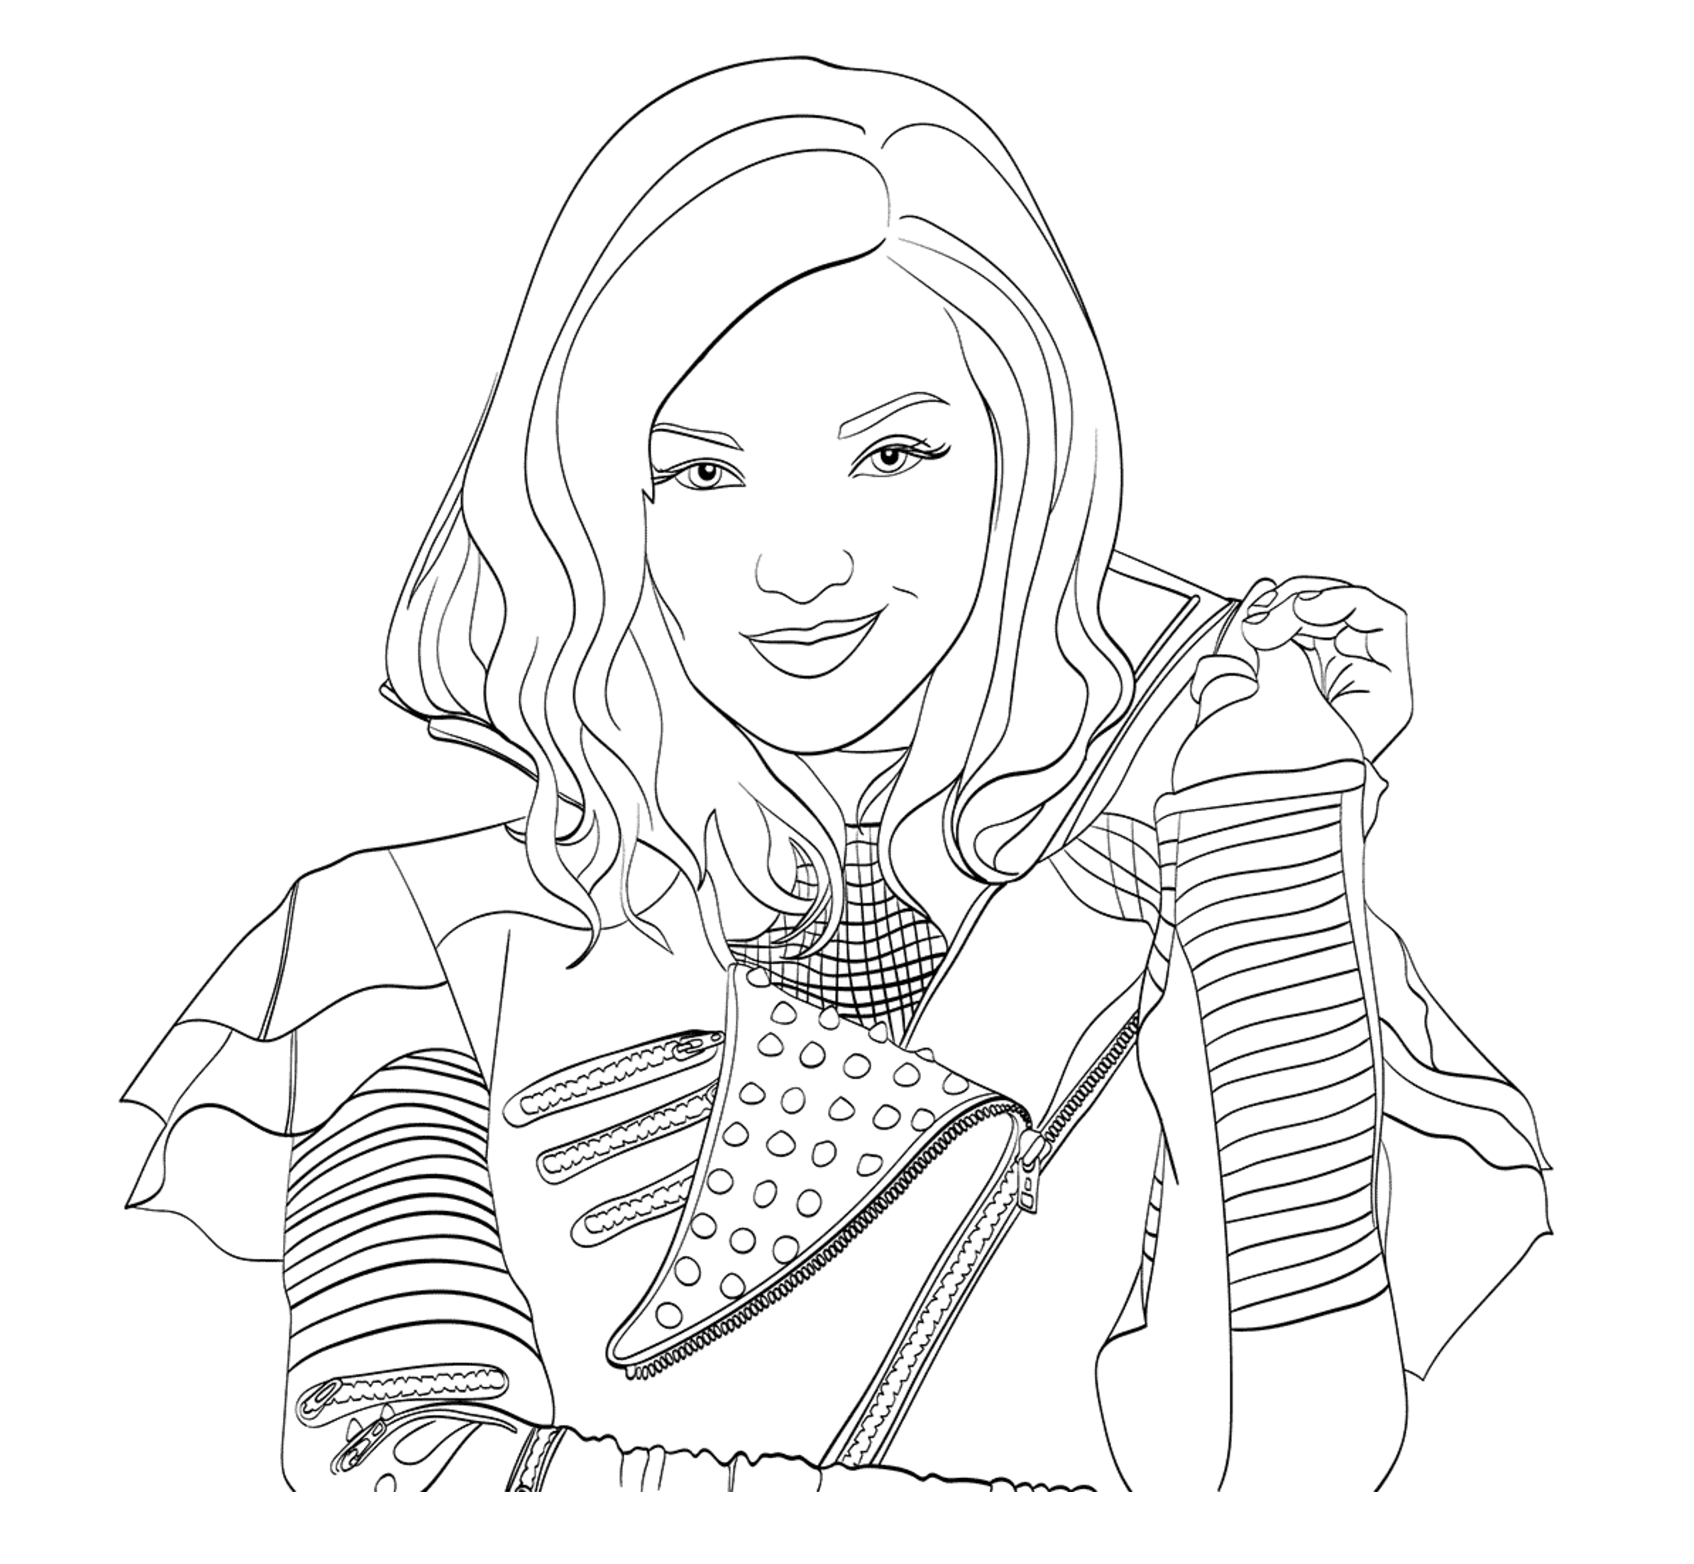 descendants coloring pages mal and evie descendants 2 coloring page that are challenger roberta and pages descendants mal coloring evie